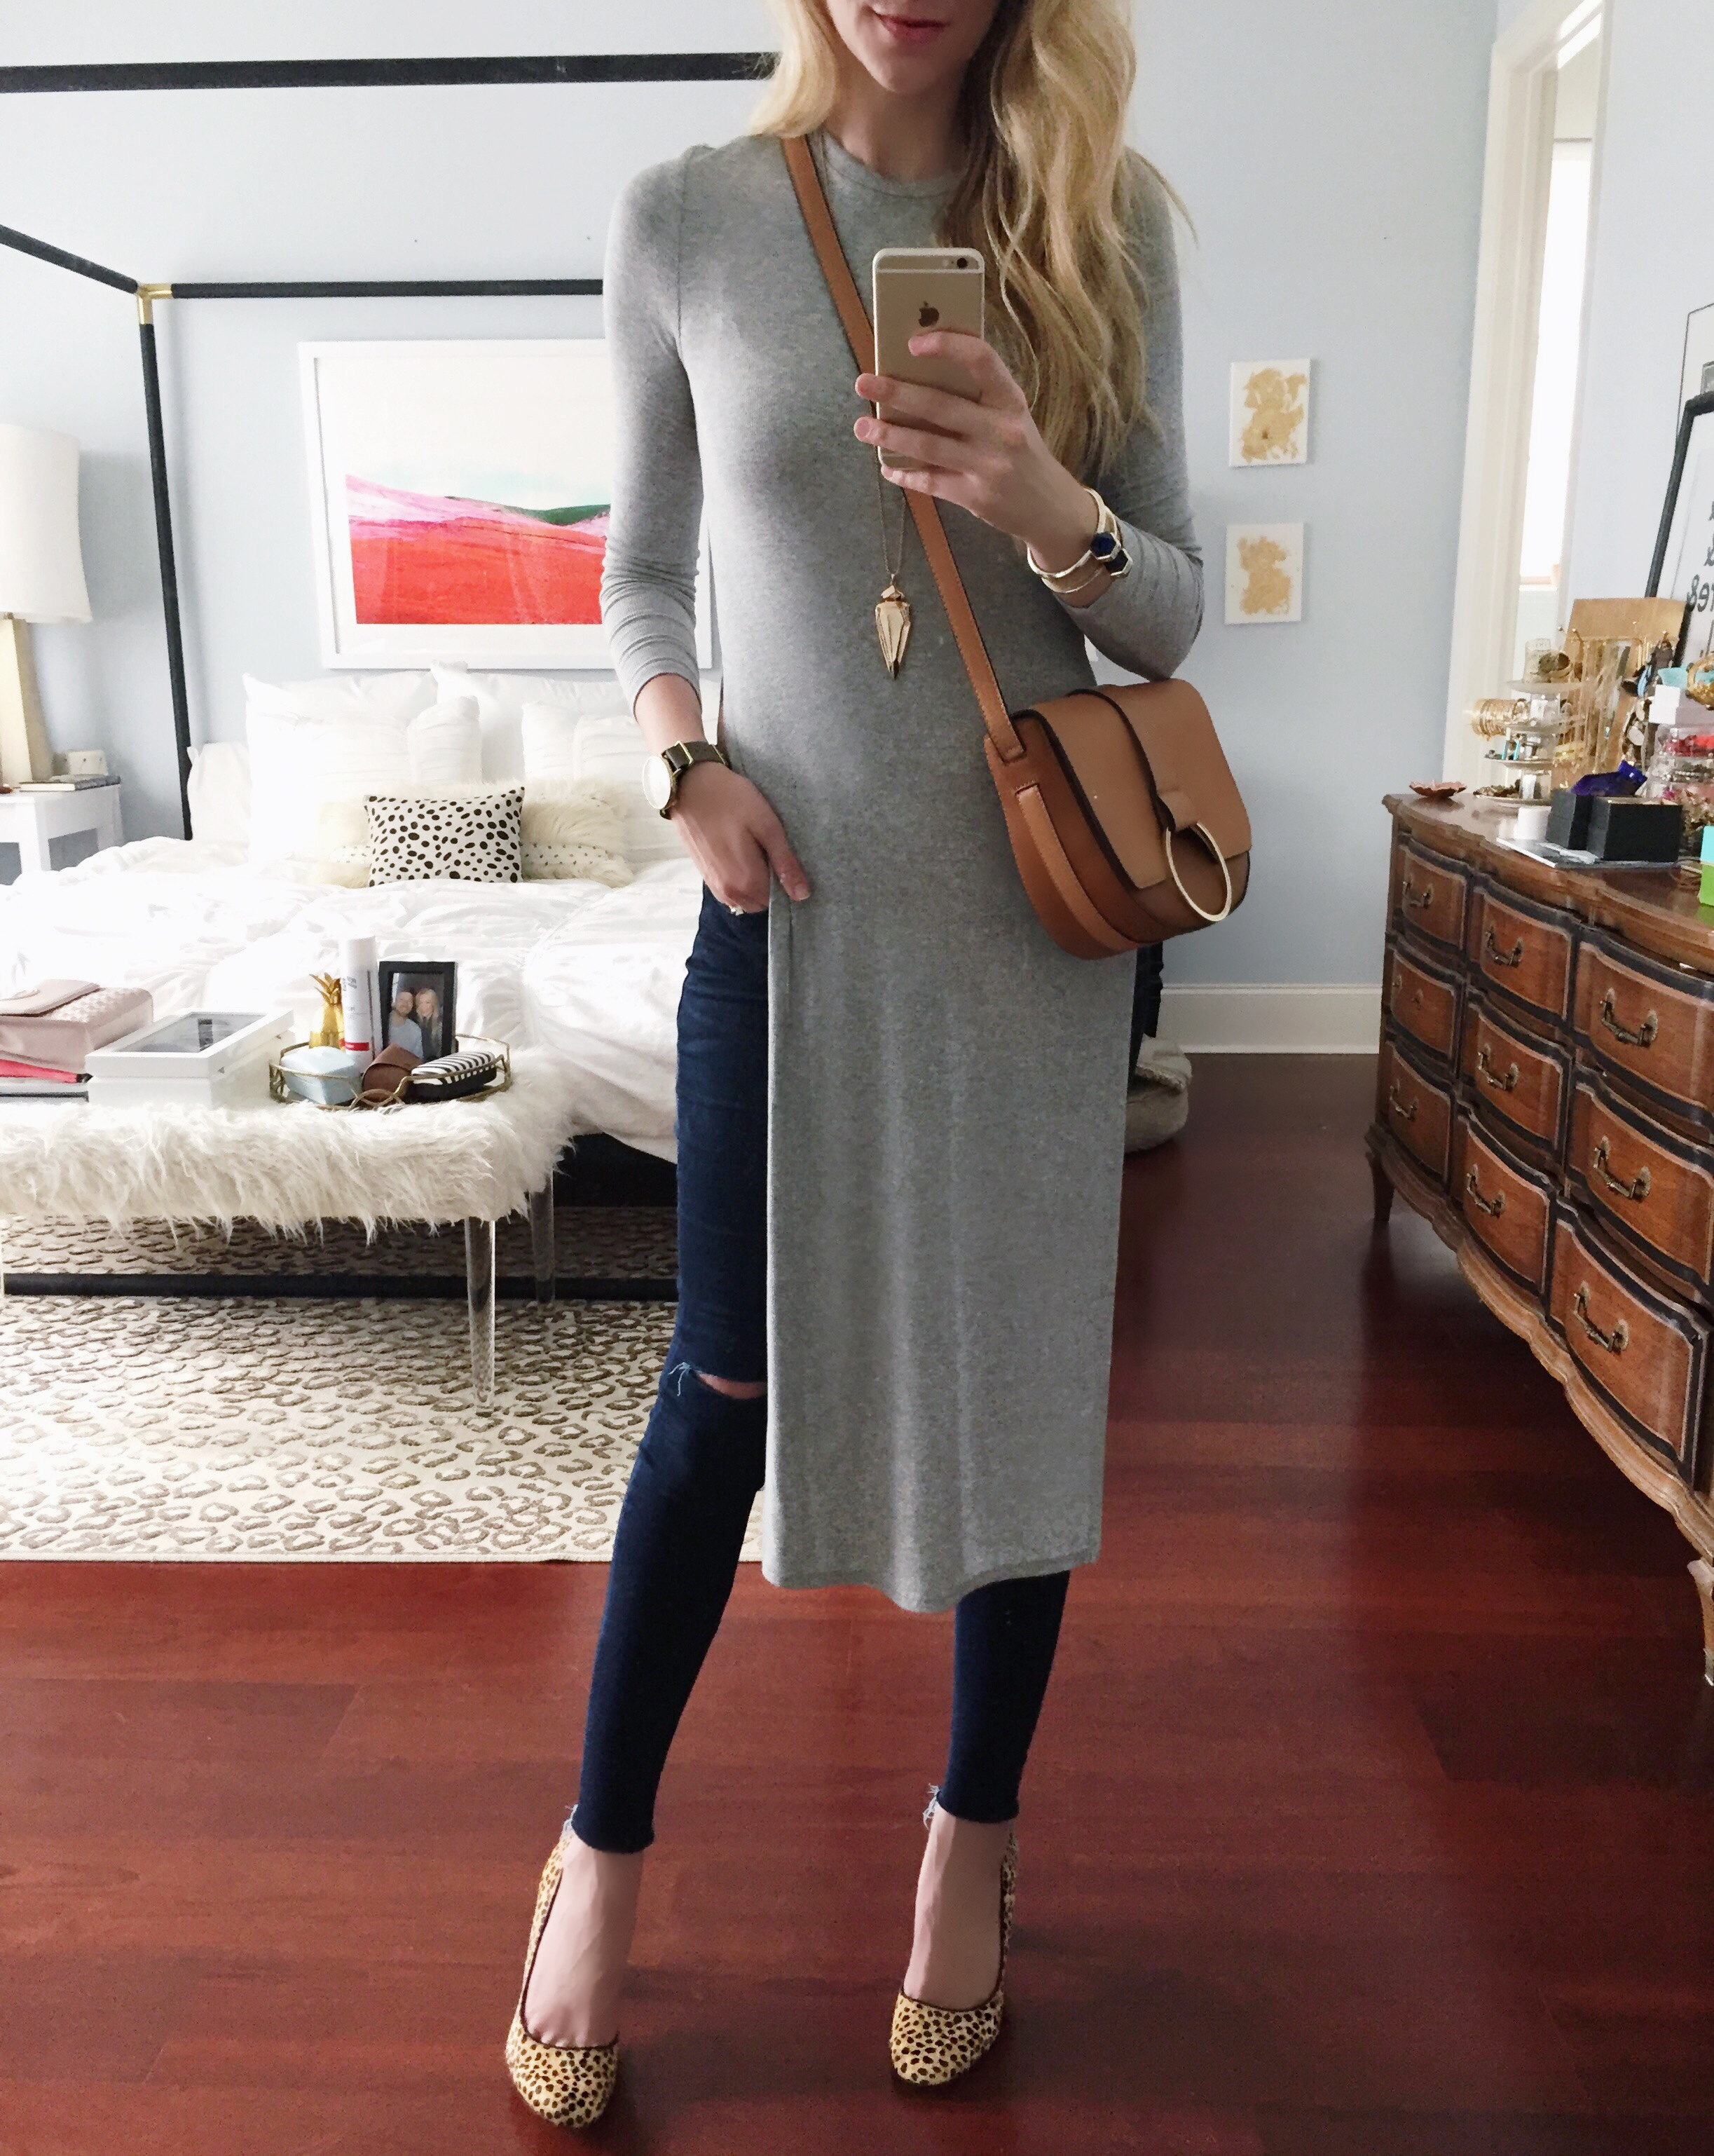 High Slit Top | Instagram Outfit